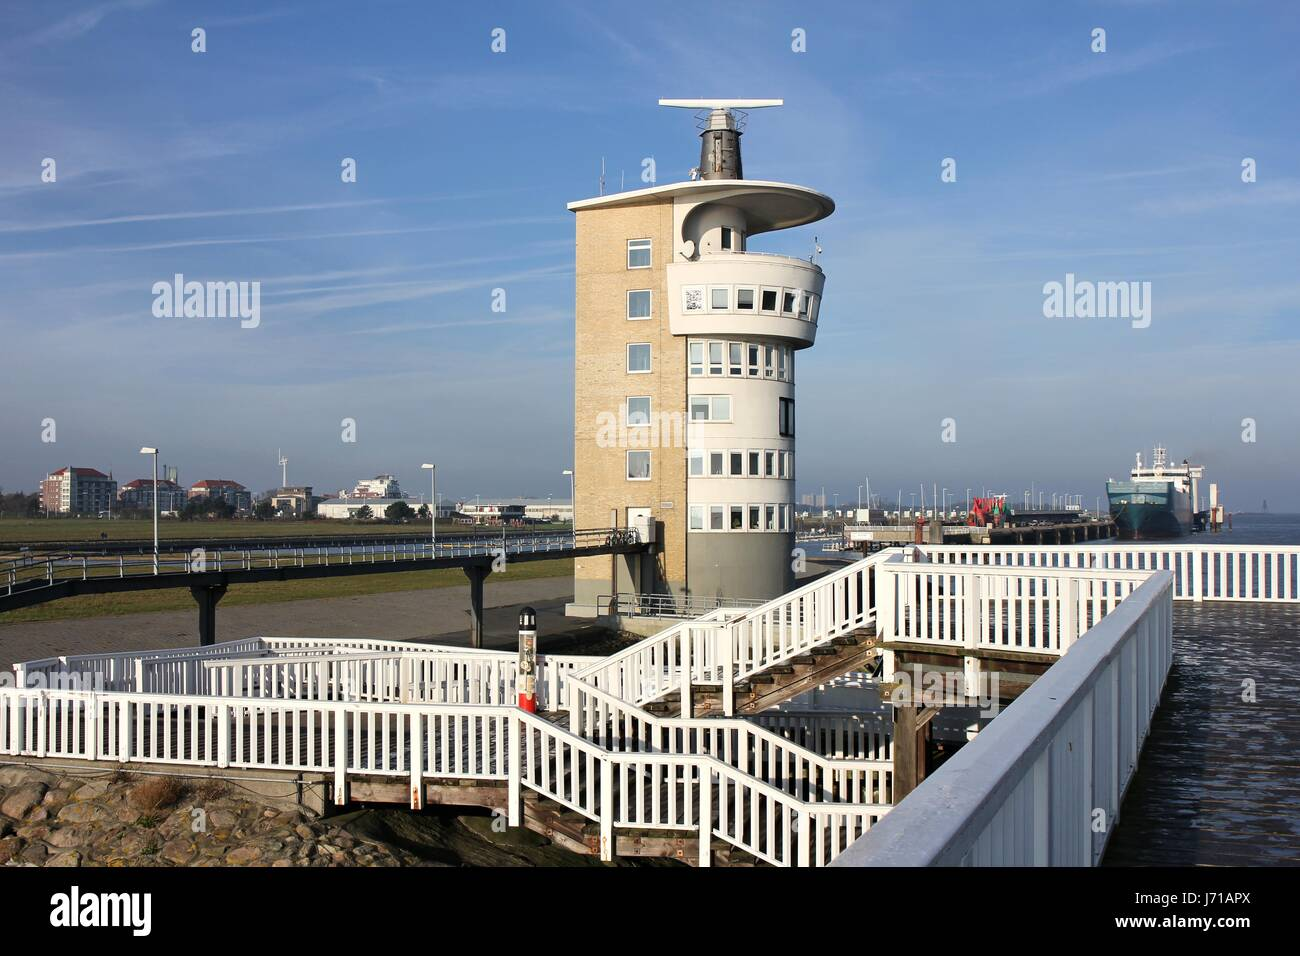 Alte Liebe - famous observation deck in Cuxhaven/ Germany at the river Elbe - Stock Image